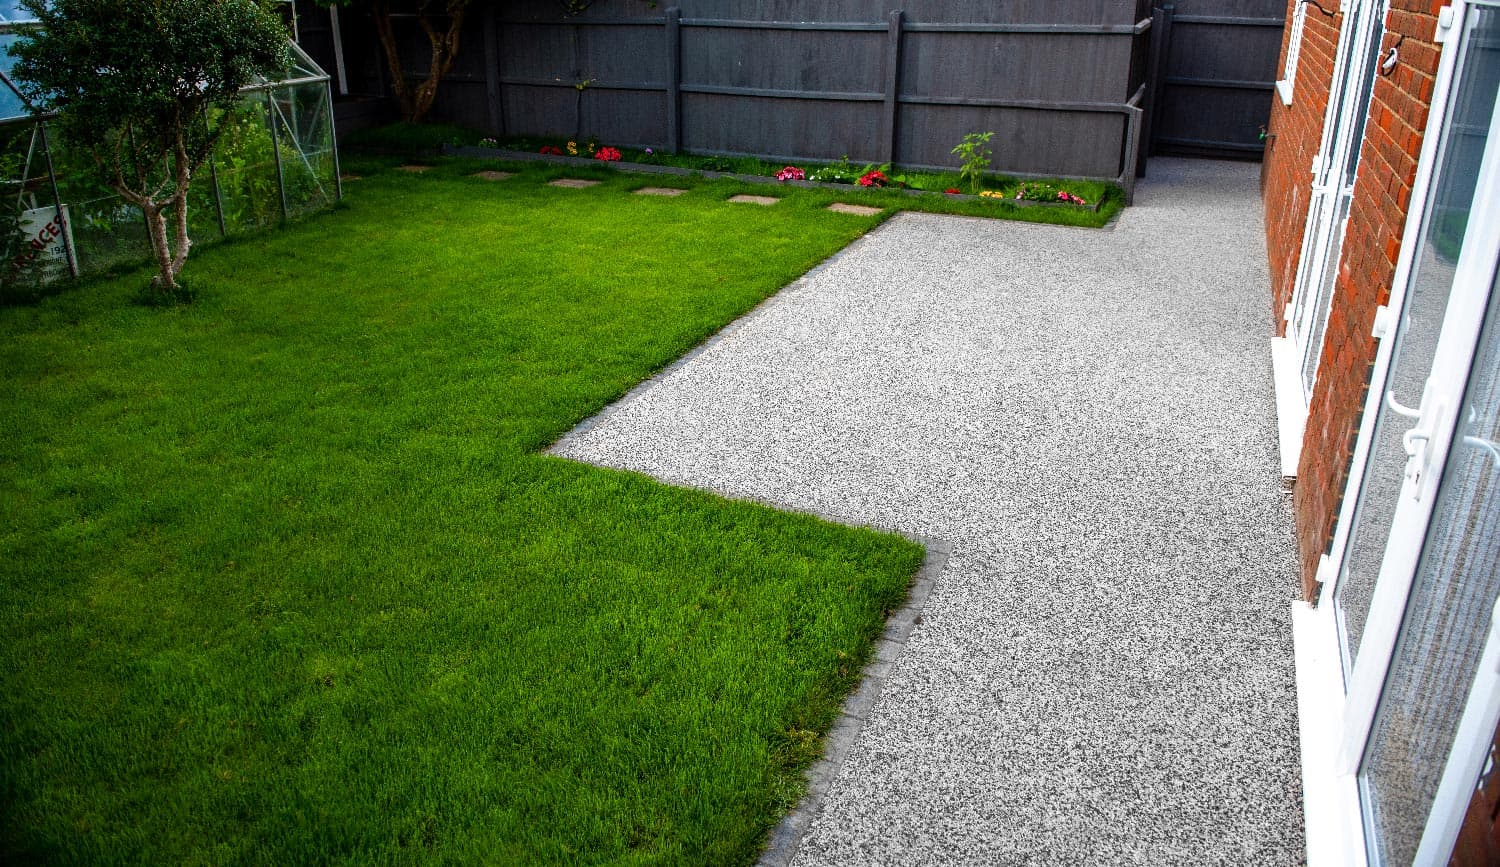 Resin-Bound-Company-in-Dorset-Garden-Paths-Patio-Landscape-Driveways